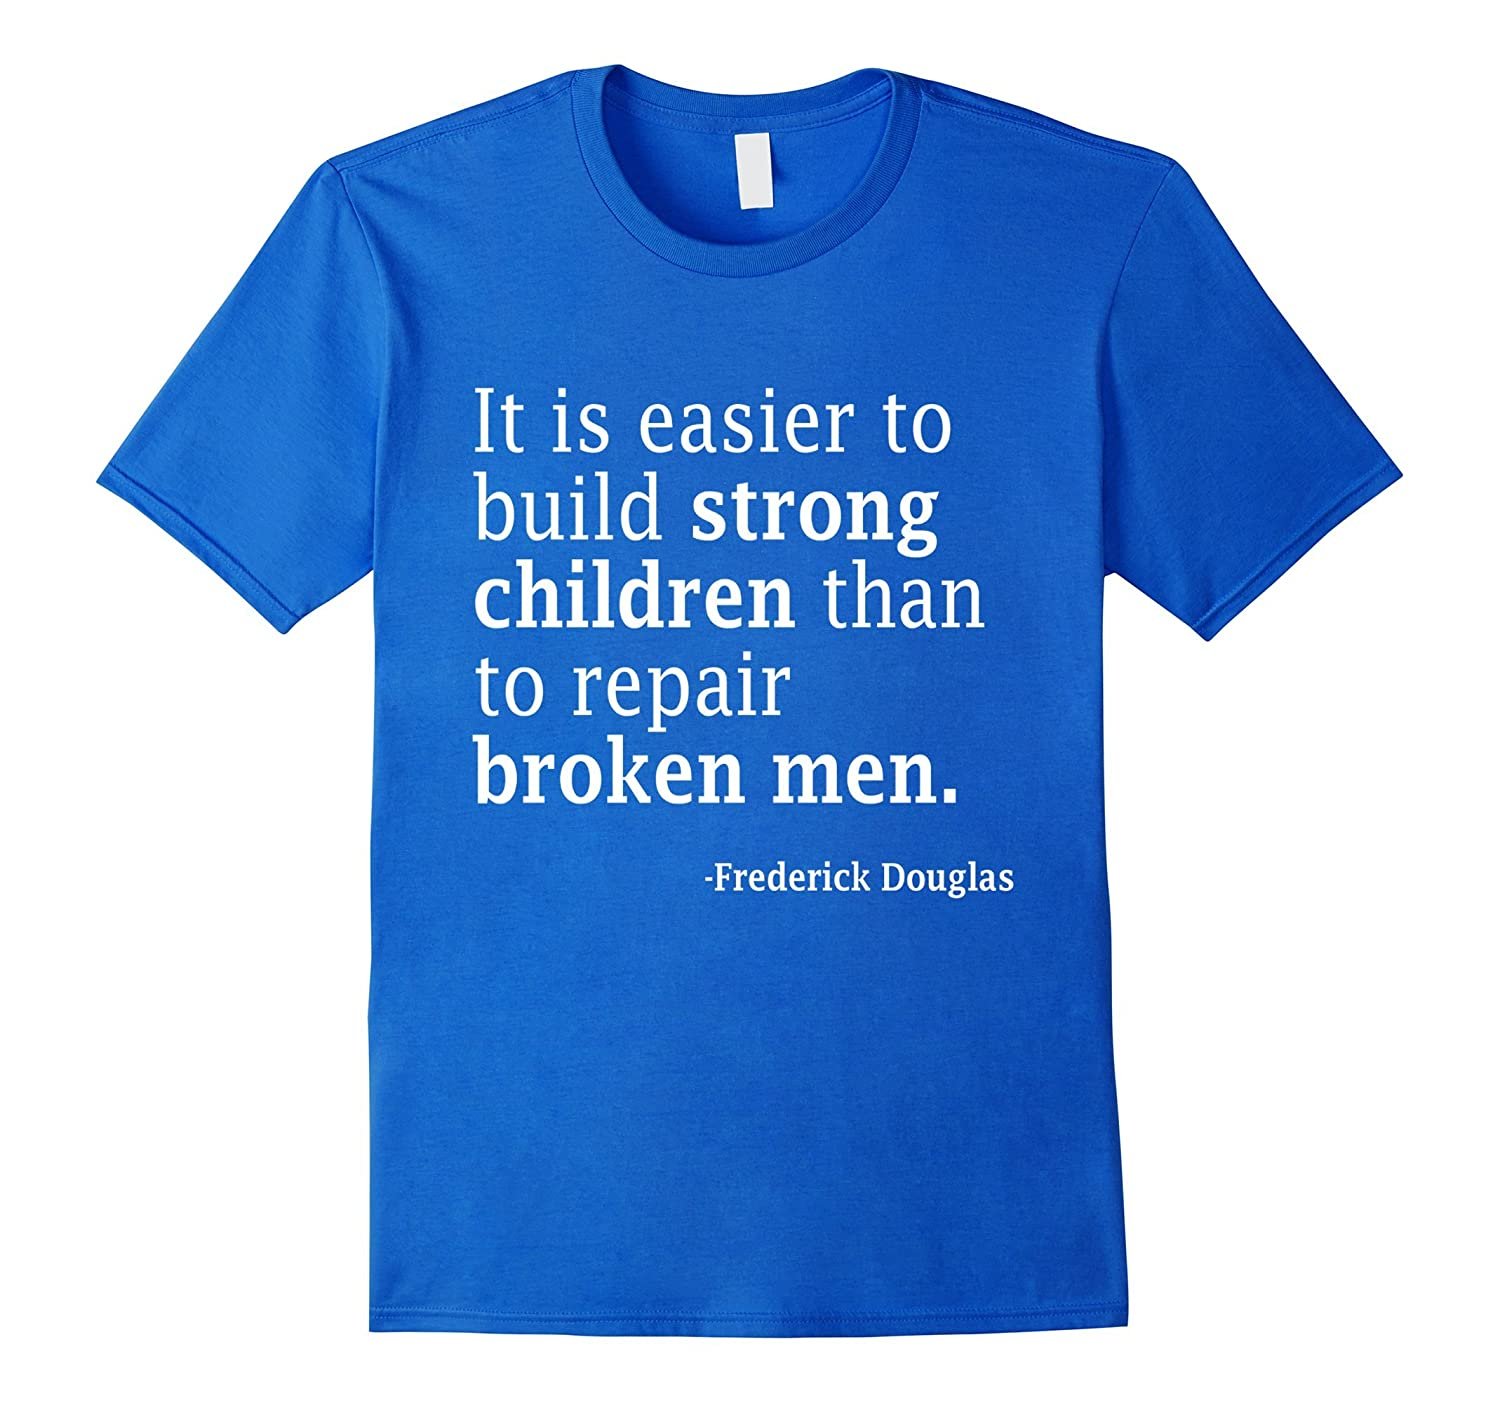 Narrative Of The Life Of Frederick Douglass Quotes: Frederick Douglass It Is Easier To Build Strong Ultra Soft